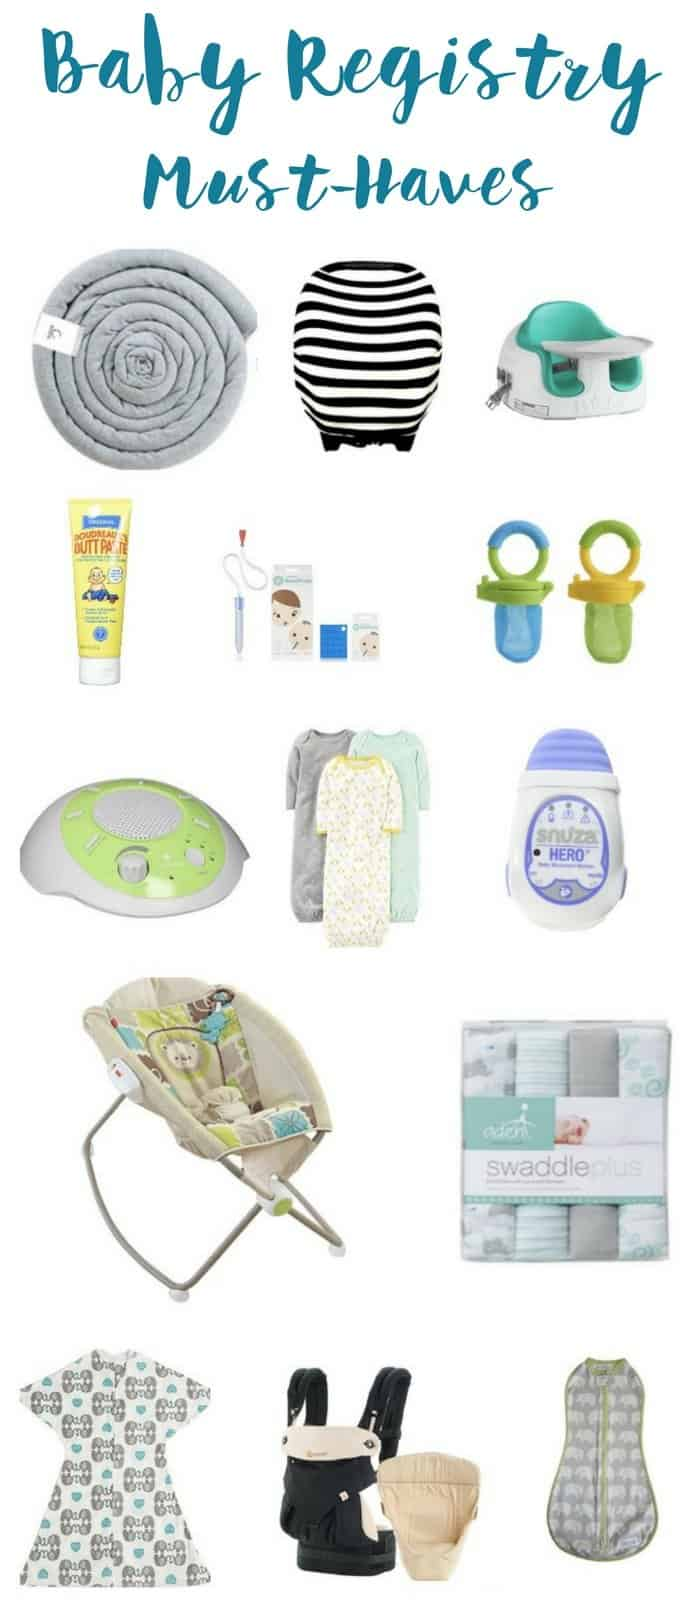 Baby Registry Must Haves: What to put on your Amazon Baby Registry